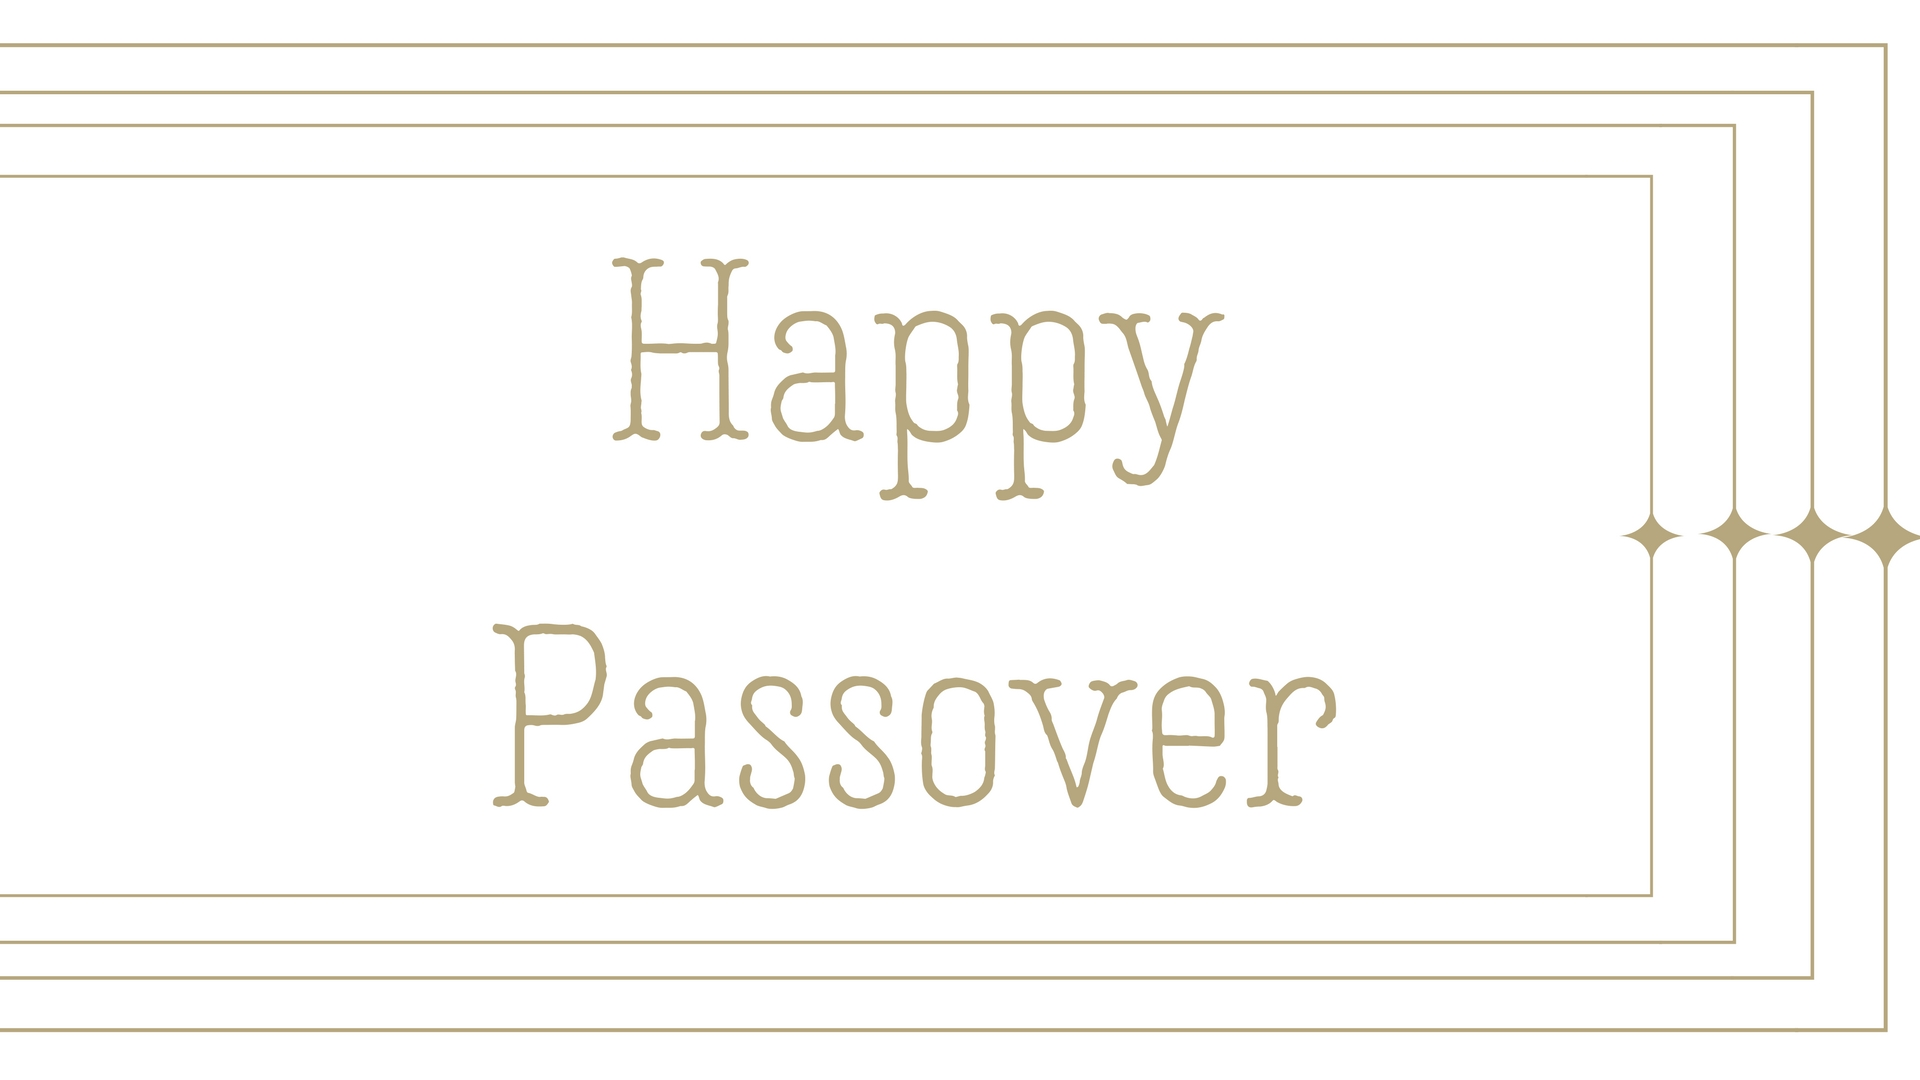 Happy Passover Rectangle Frame Greeting Card Postcard 22